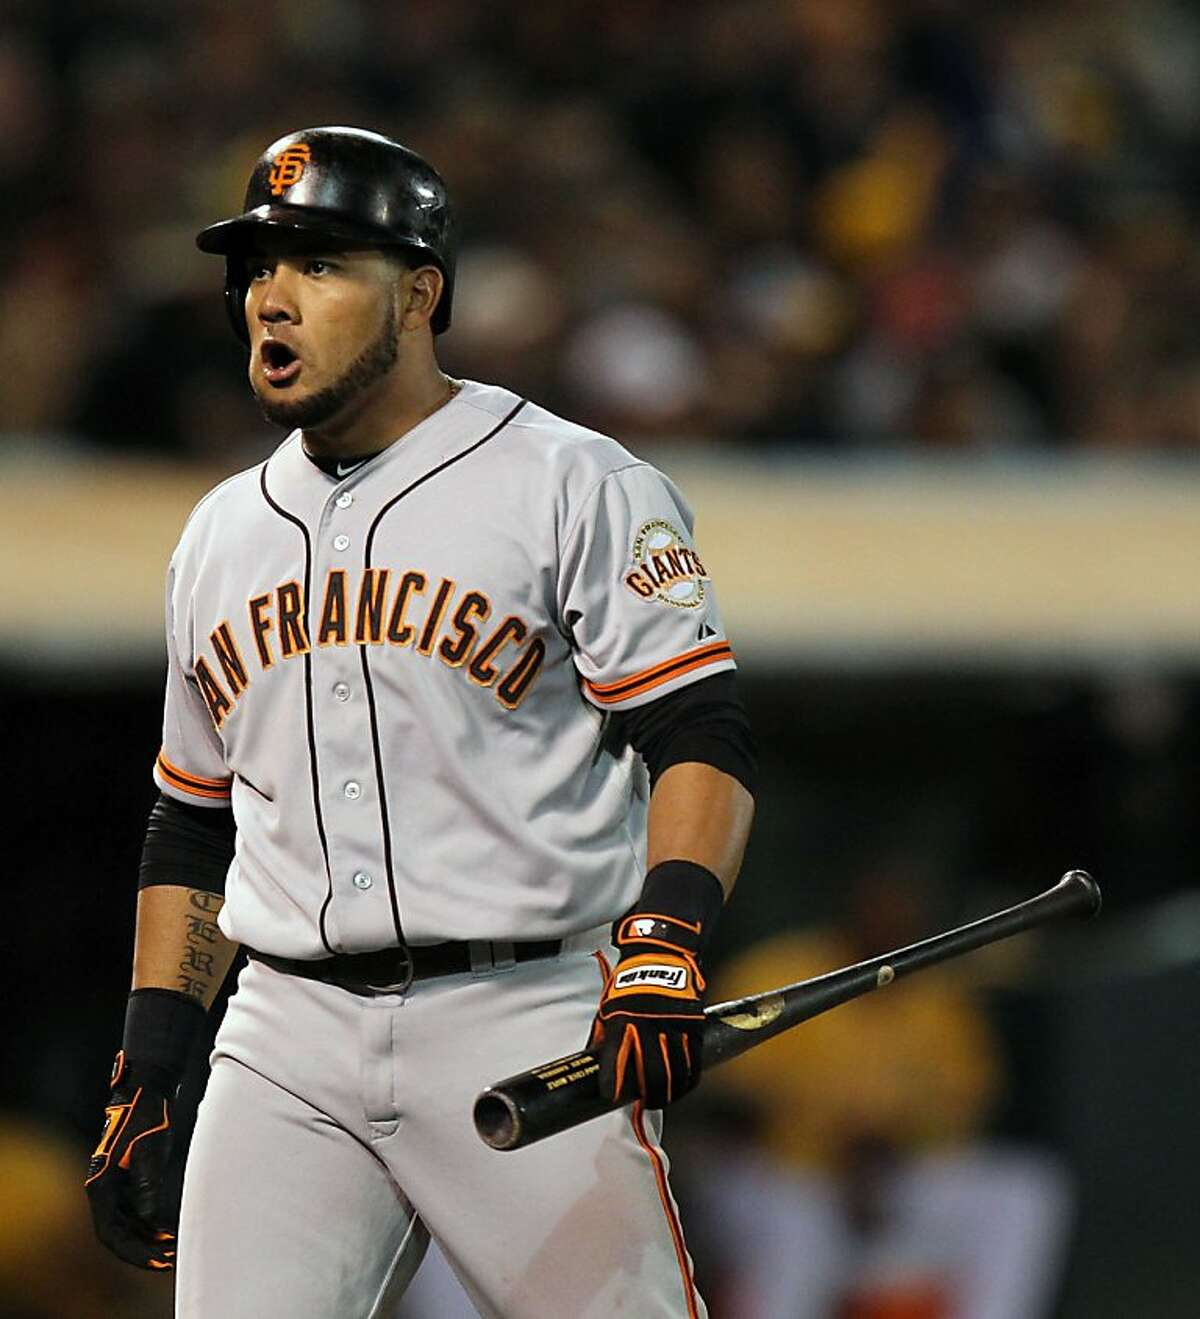 San Francisco Giants Melky Cabrera turns to the Giants dugout and voices his displeasure after striking out in the 8th inning against the Oakland Athletics during their MLB Baseball Game on Friday June 22, 2012 at the Oakland Coliseum, in Oakland California.